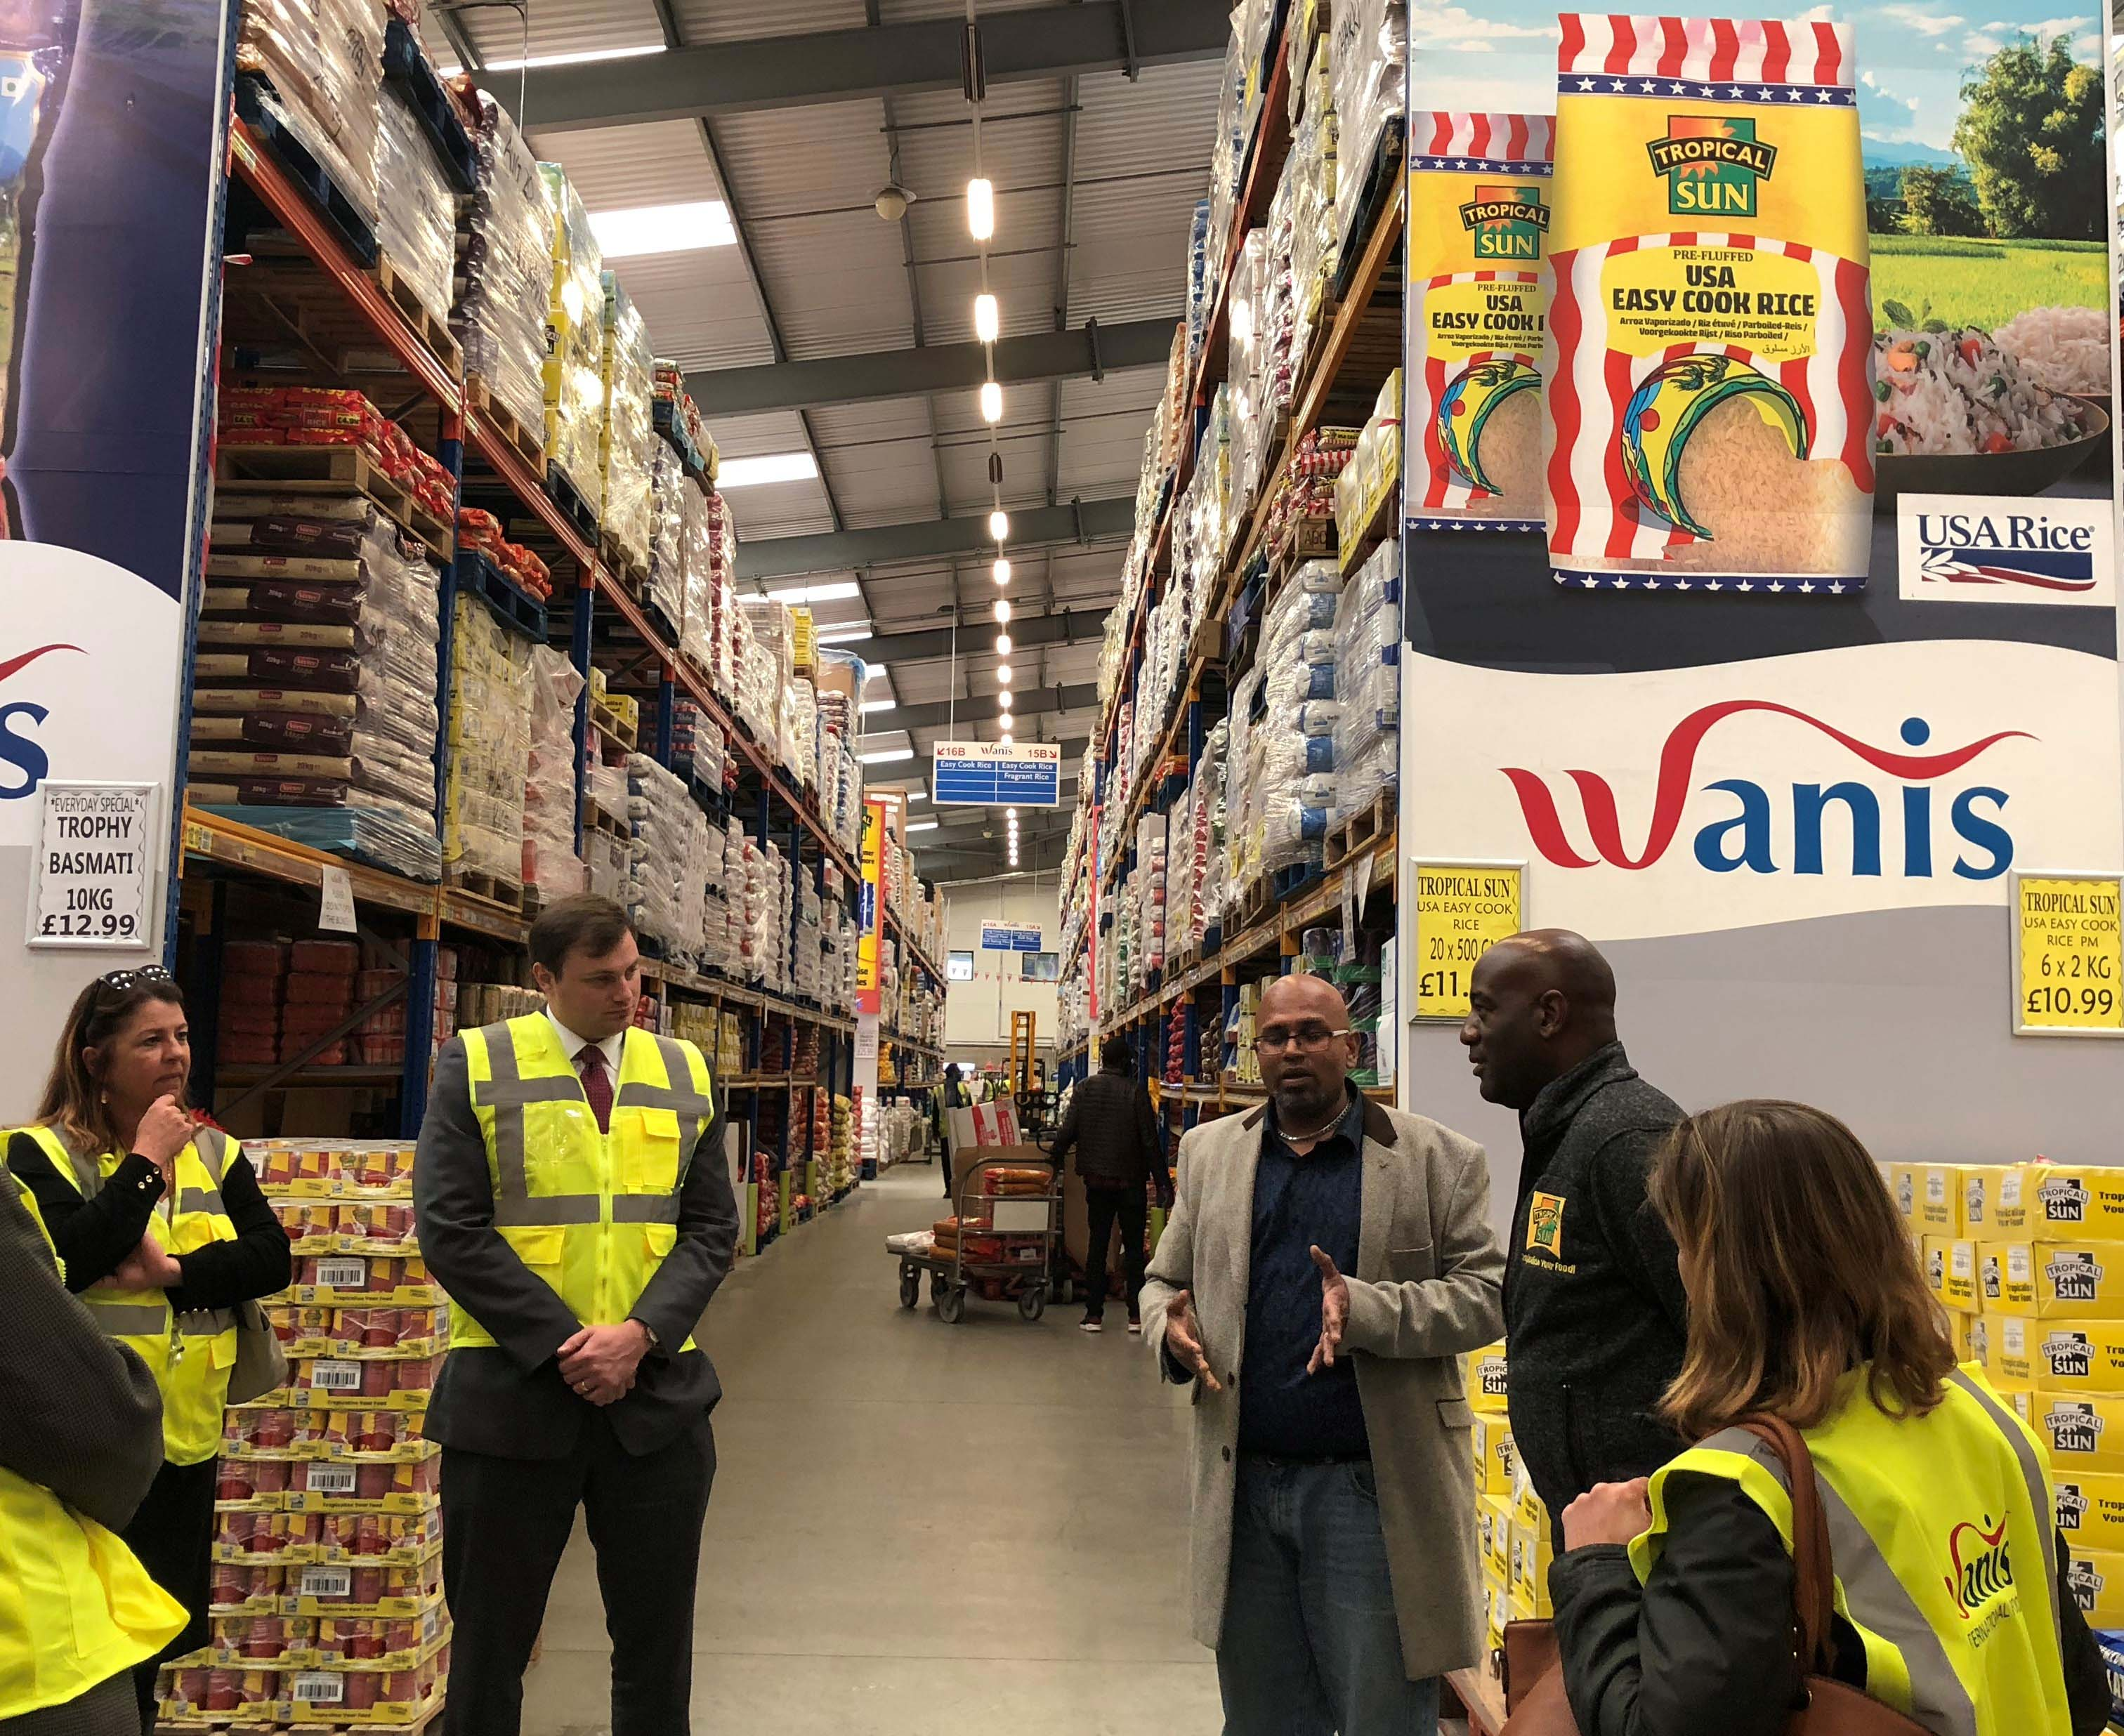 IP-w.USA Rice Delegation Visits UK to Promote Market Interests-181023